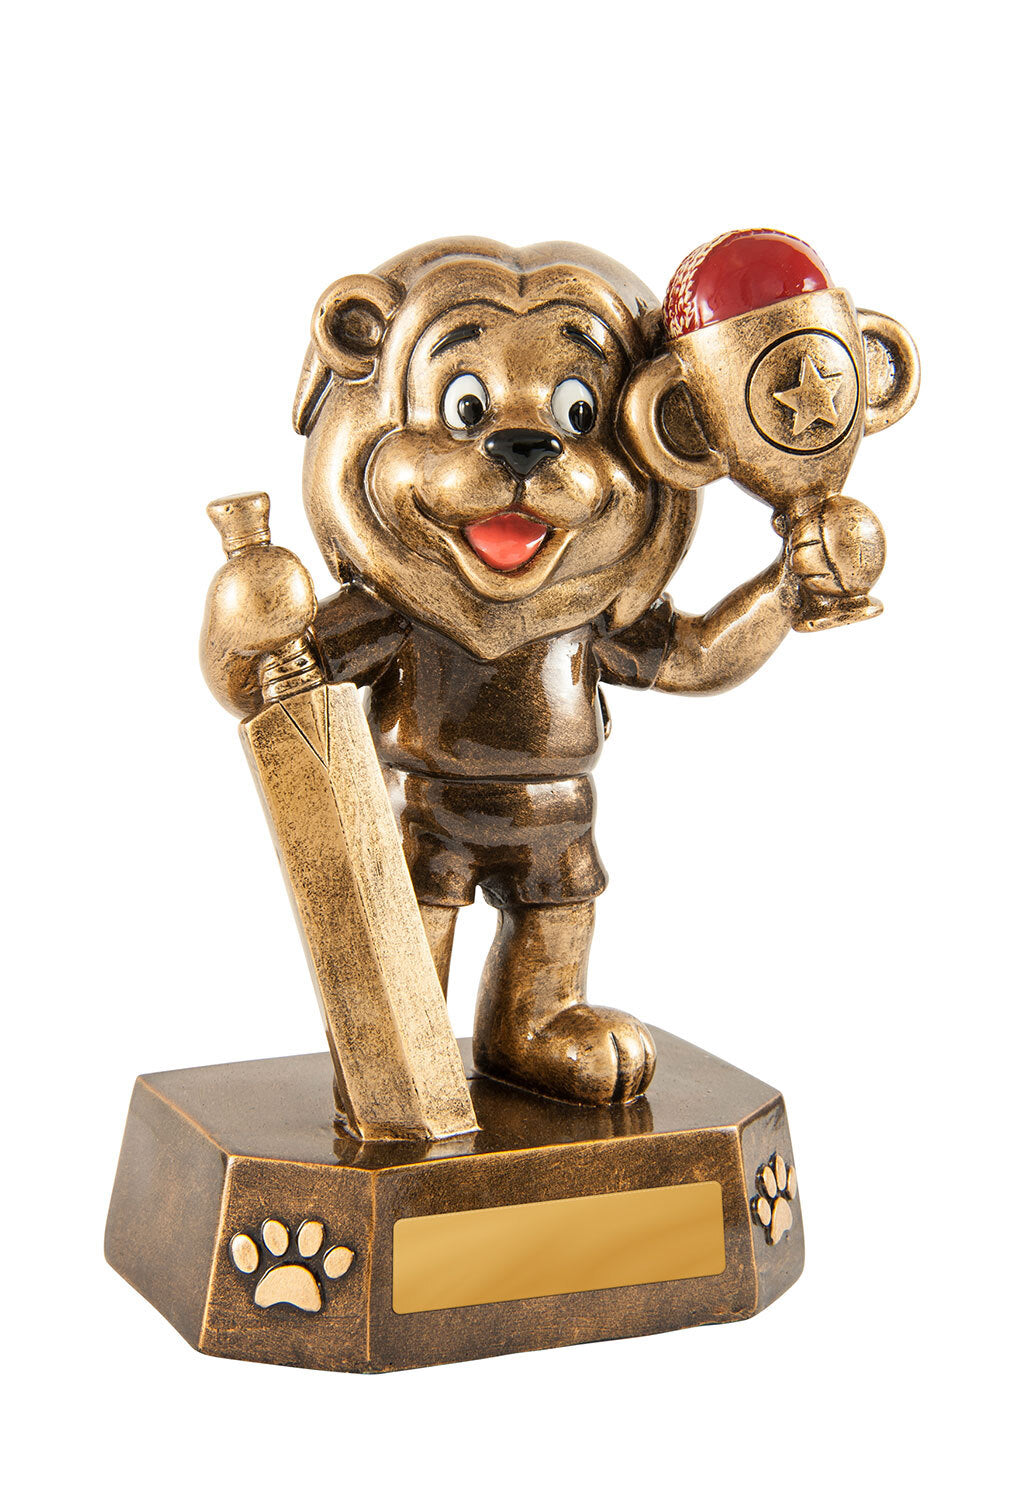 318-1 Cricket Lion Trophy, Holding Bat Gold Cup & Red Ball Gold Resin with red Cricket Ball  125mm  Engraving & Club Logo included - delivery or collect from Gold Coast Trophies, near Broadbeach Qld